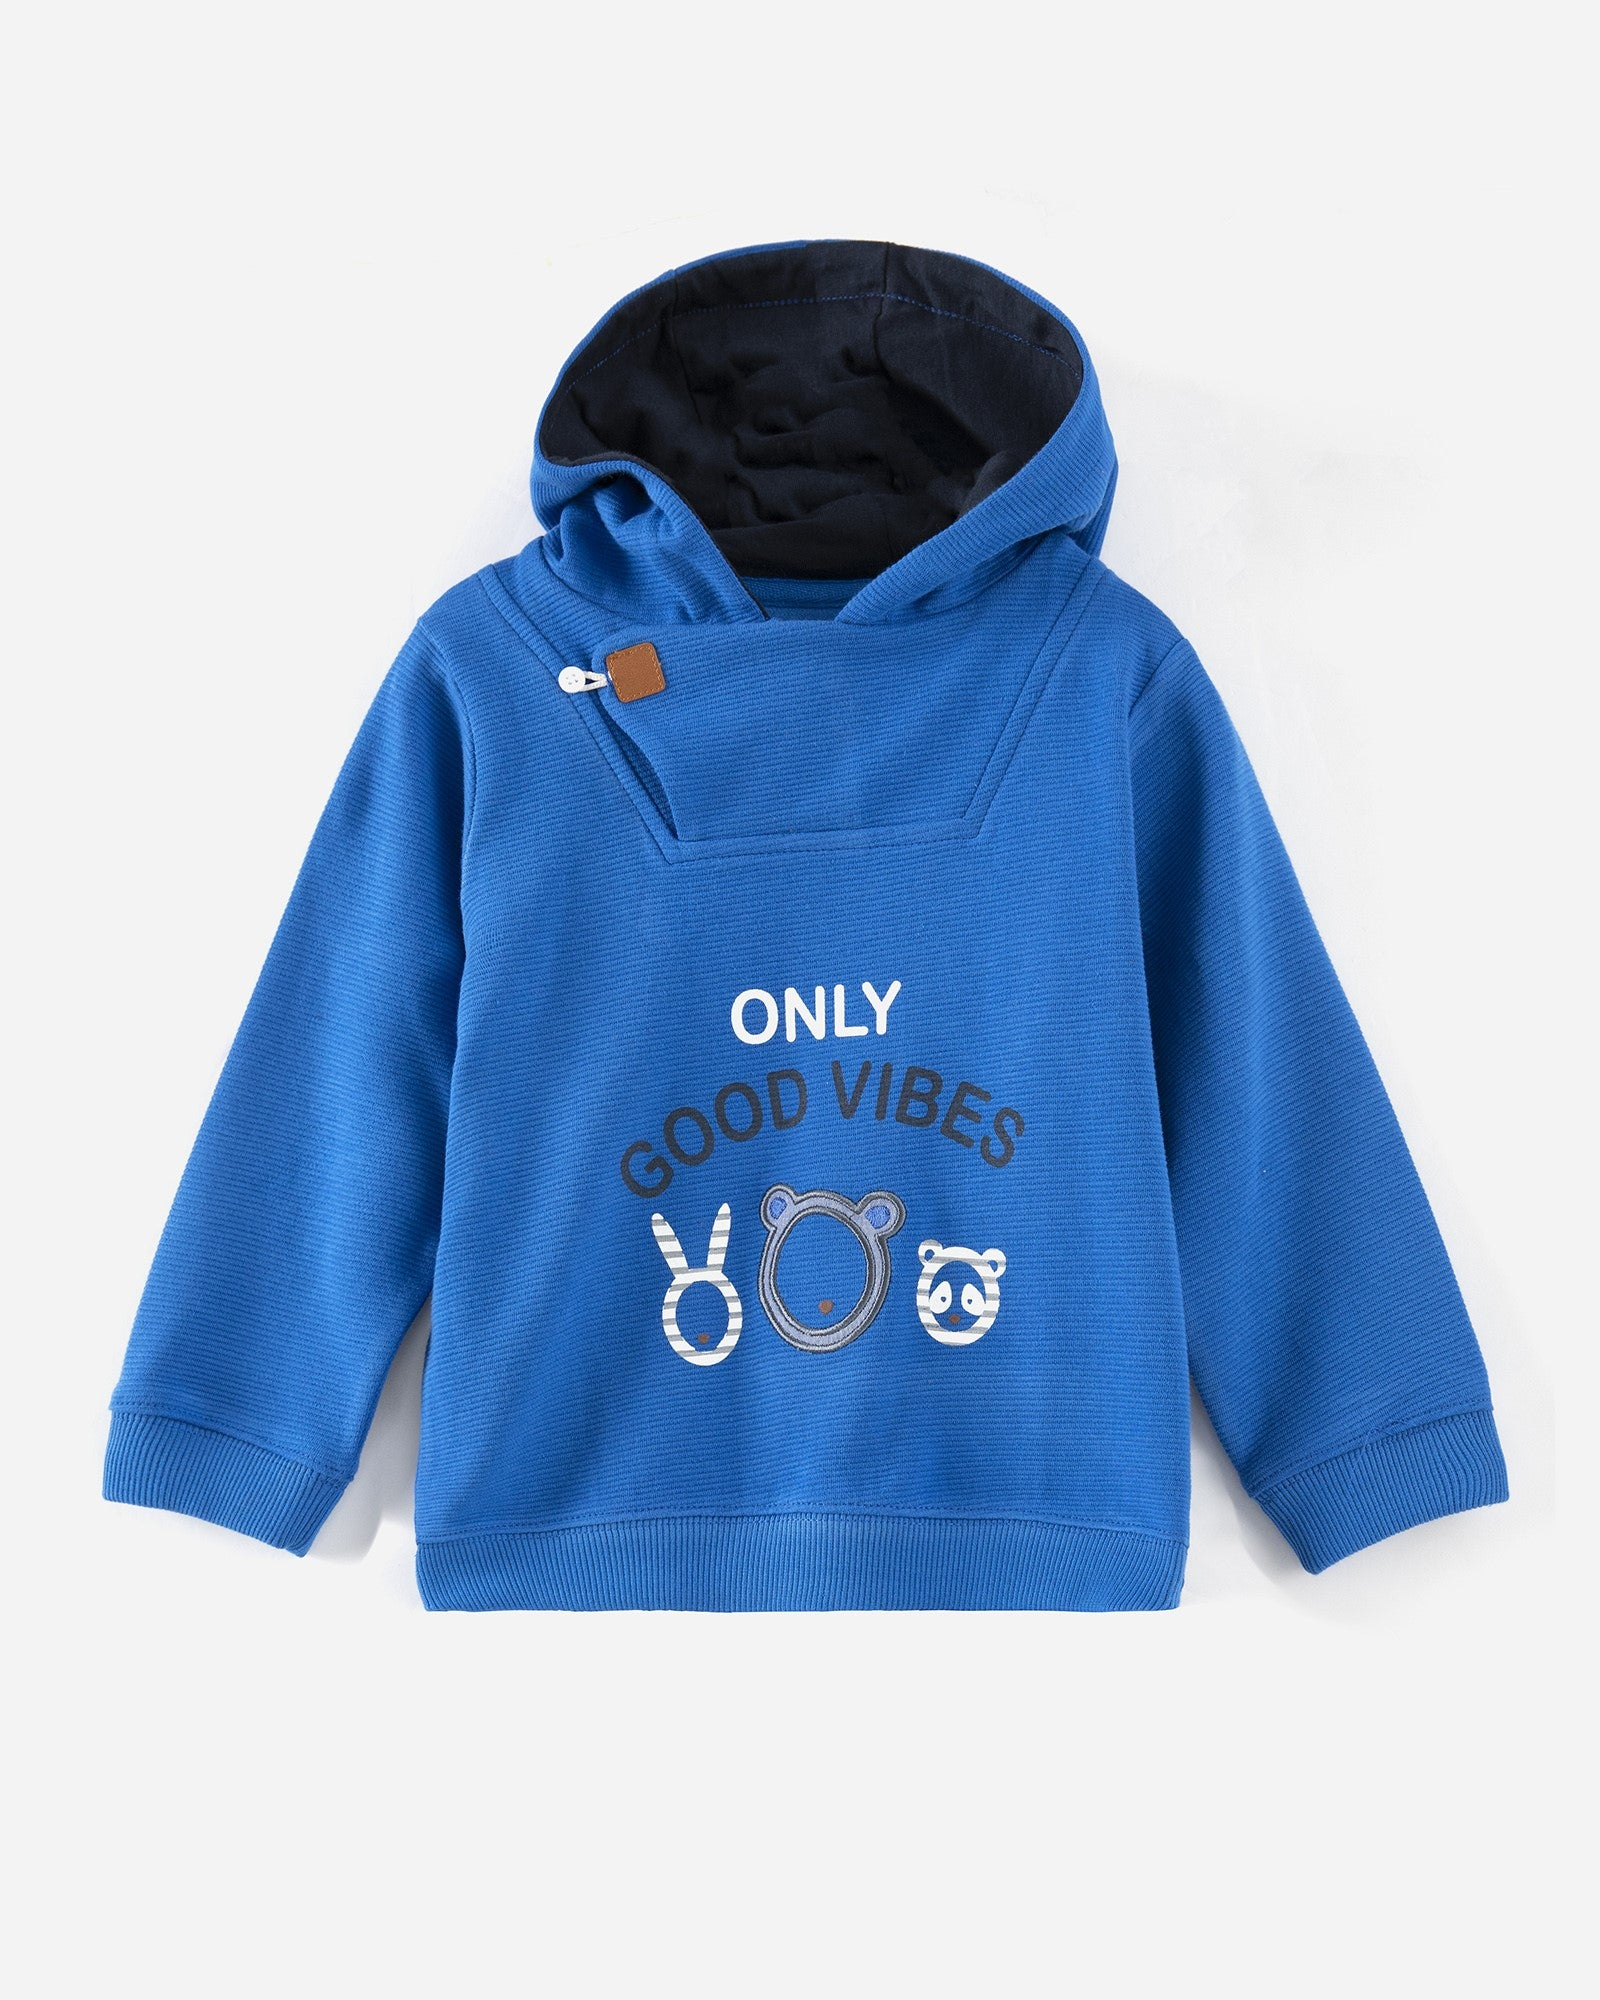 Only Good Vibes Hoodie